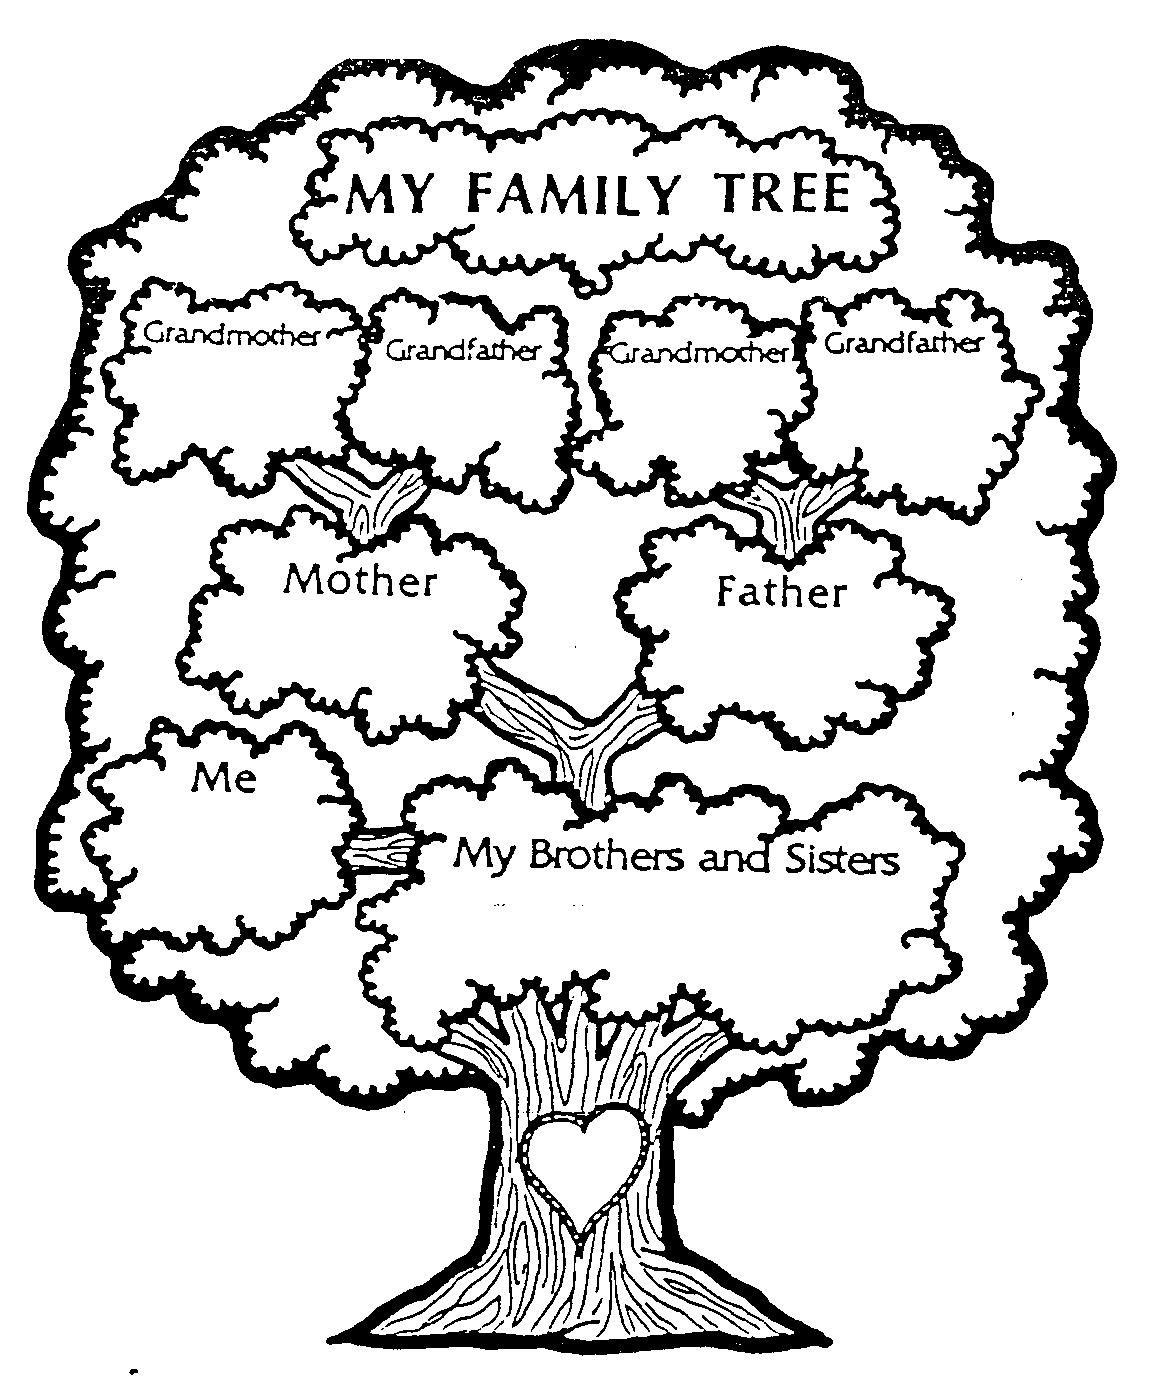 http://freepages.genealogy.rootsweb.ancestry.com/~archibald/Pedigree ...